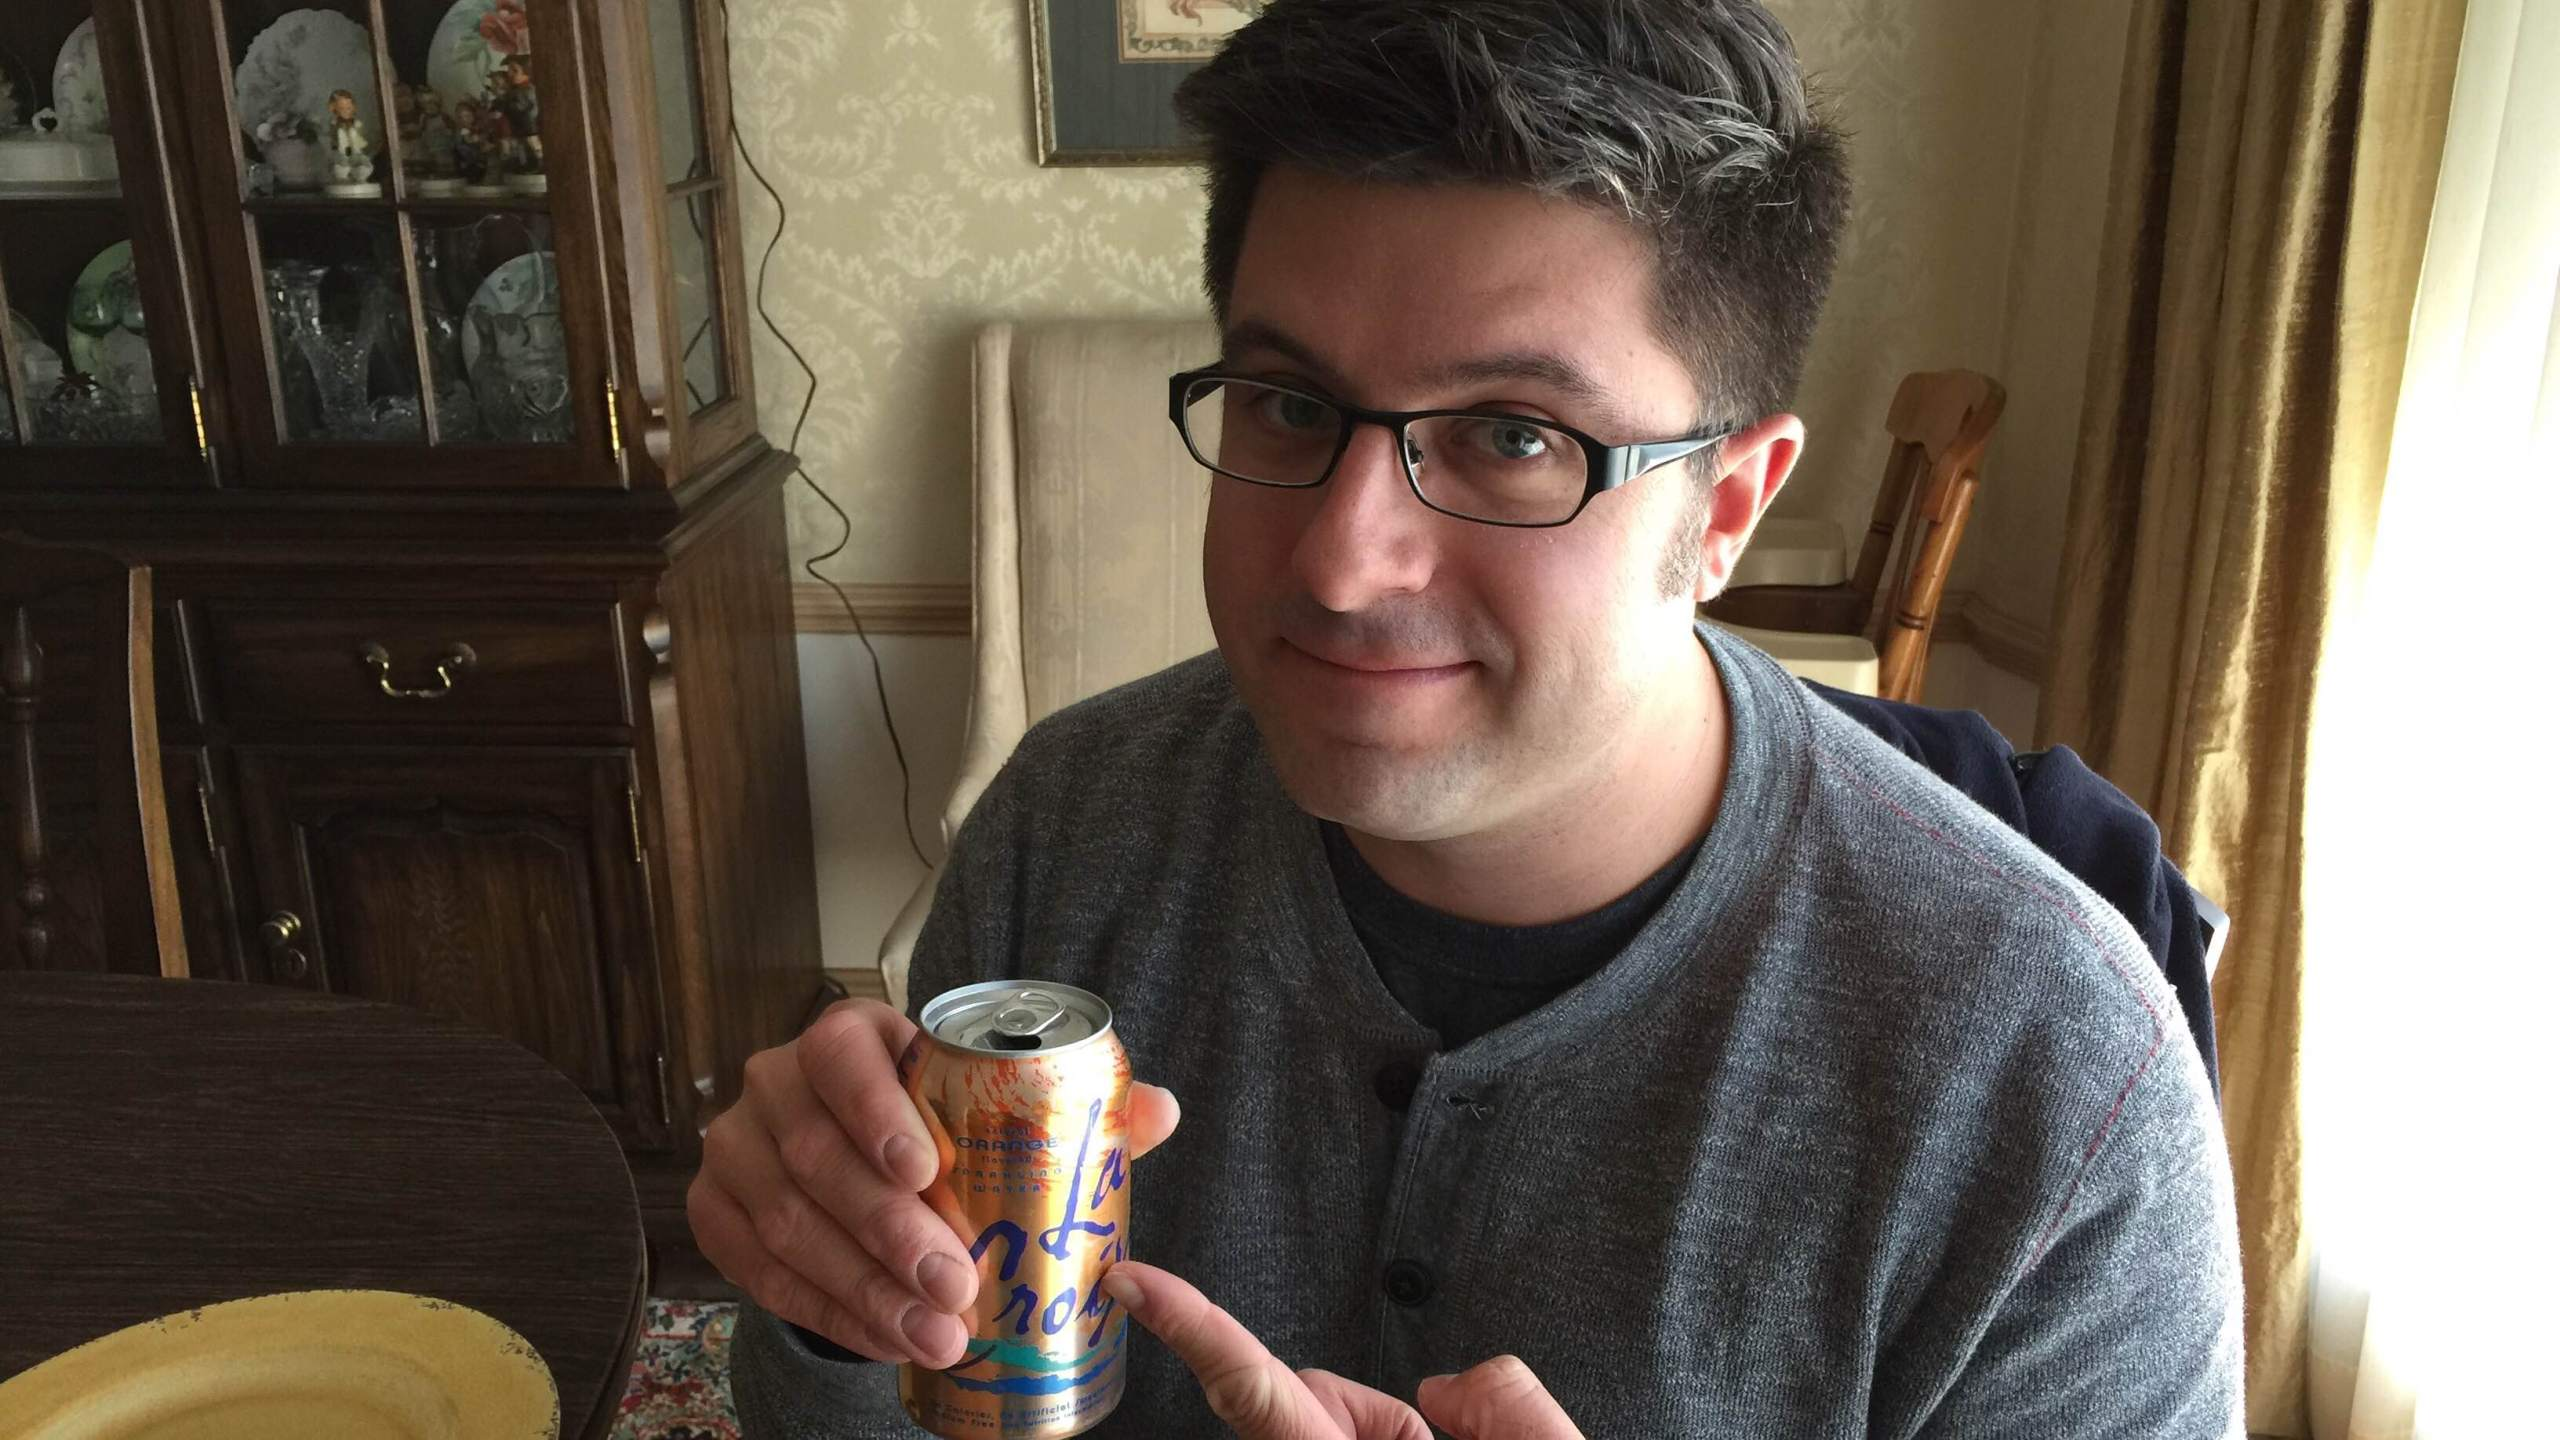 OTL host Mike Stephen offers his services as a spokesperson for LaCroix Sparkling Water.